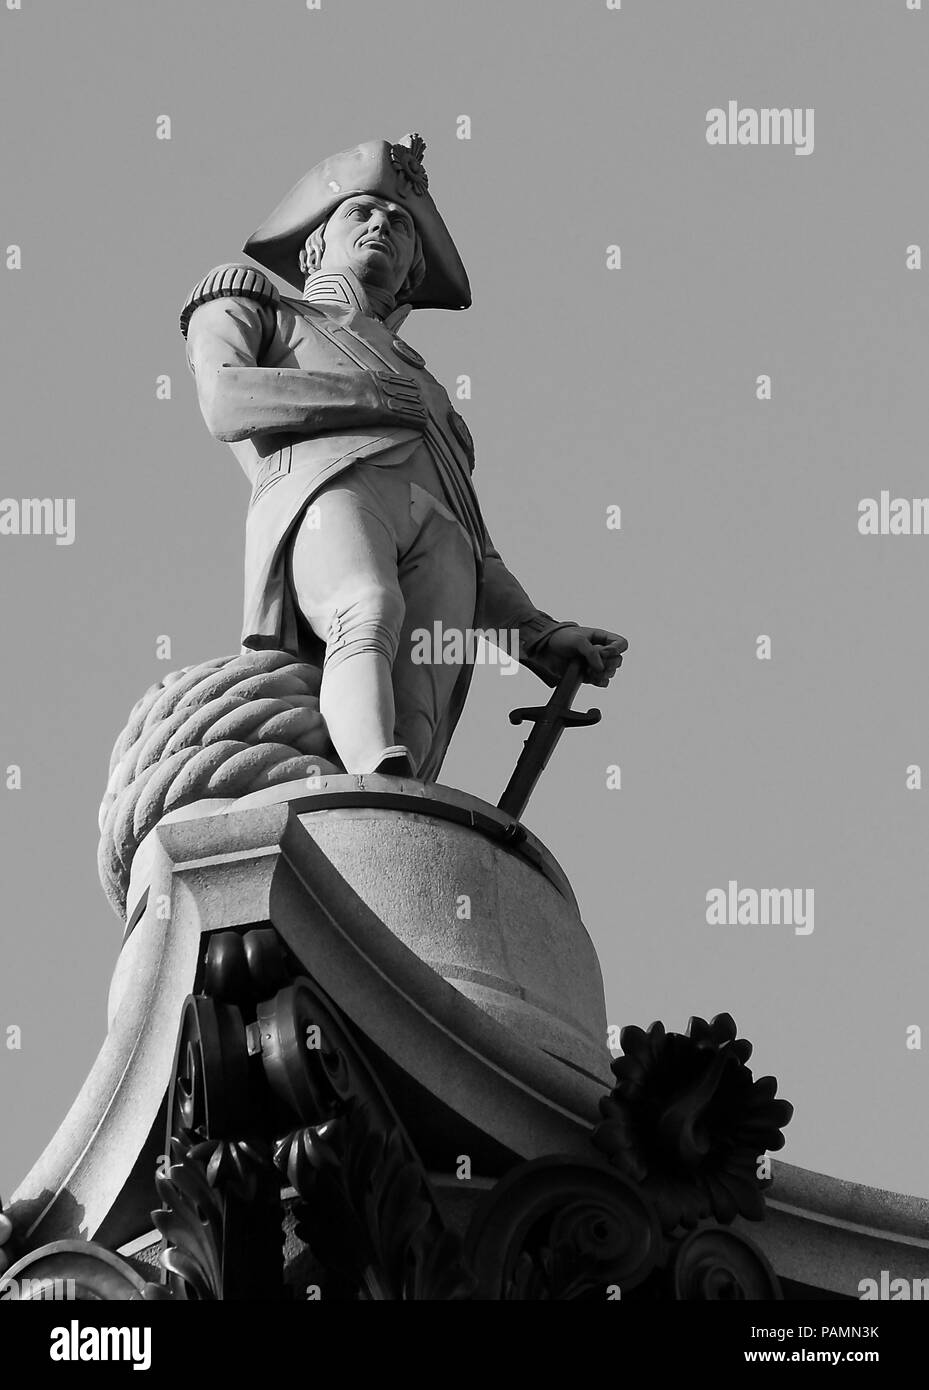 London, United Kingdom - September 11 2007:   The granite statue of Admiral Lord Horatio Neslon, sculpted by William Railton, atop Nelson's column in  - Stock Image